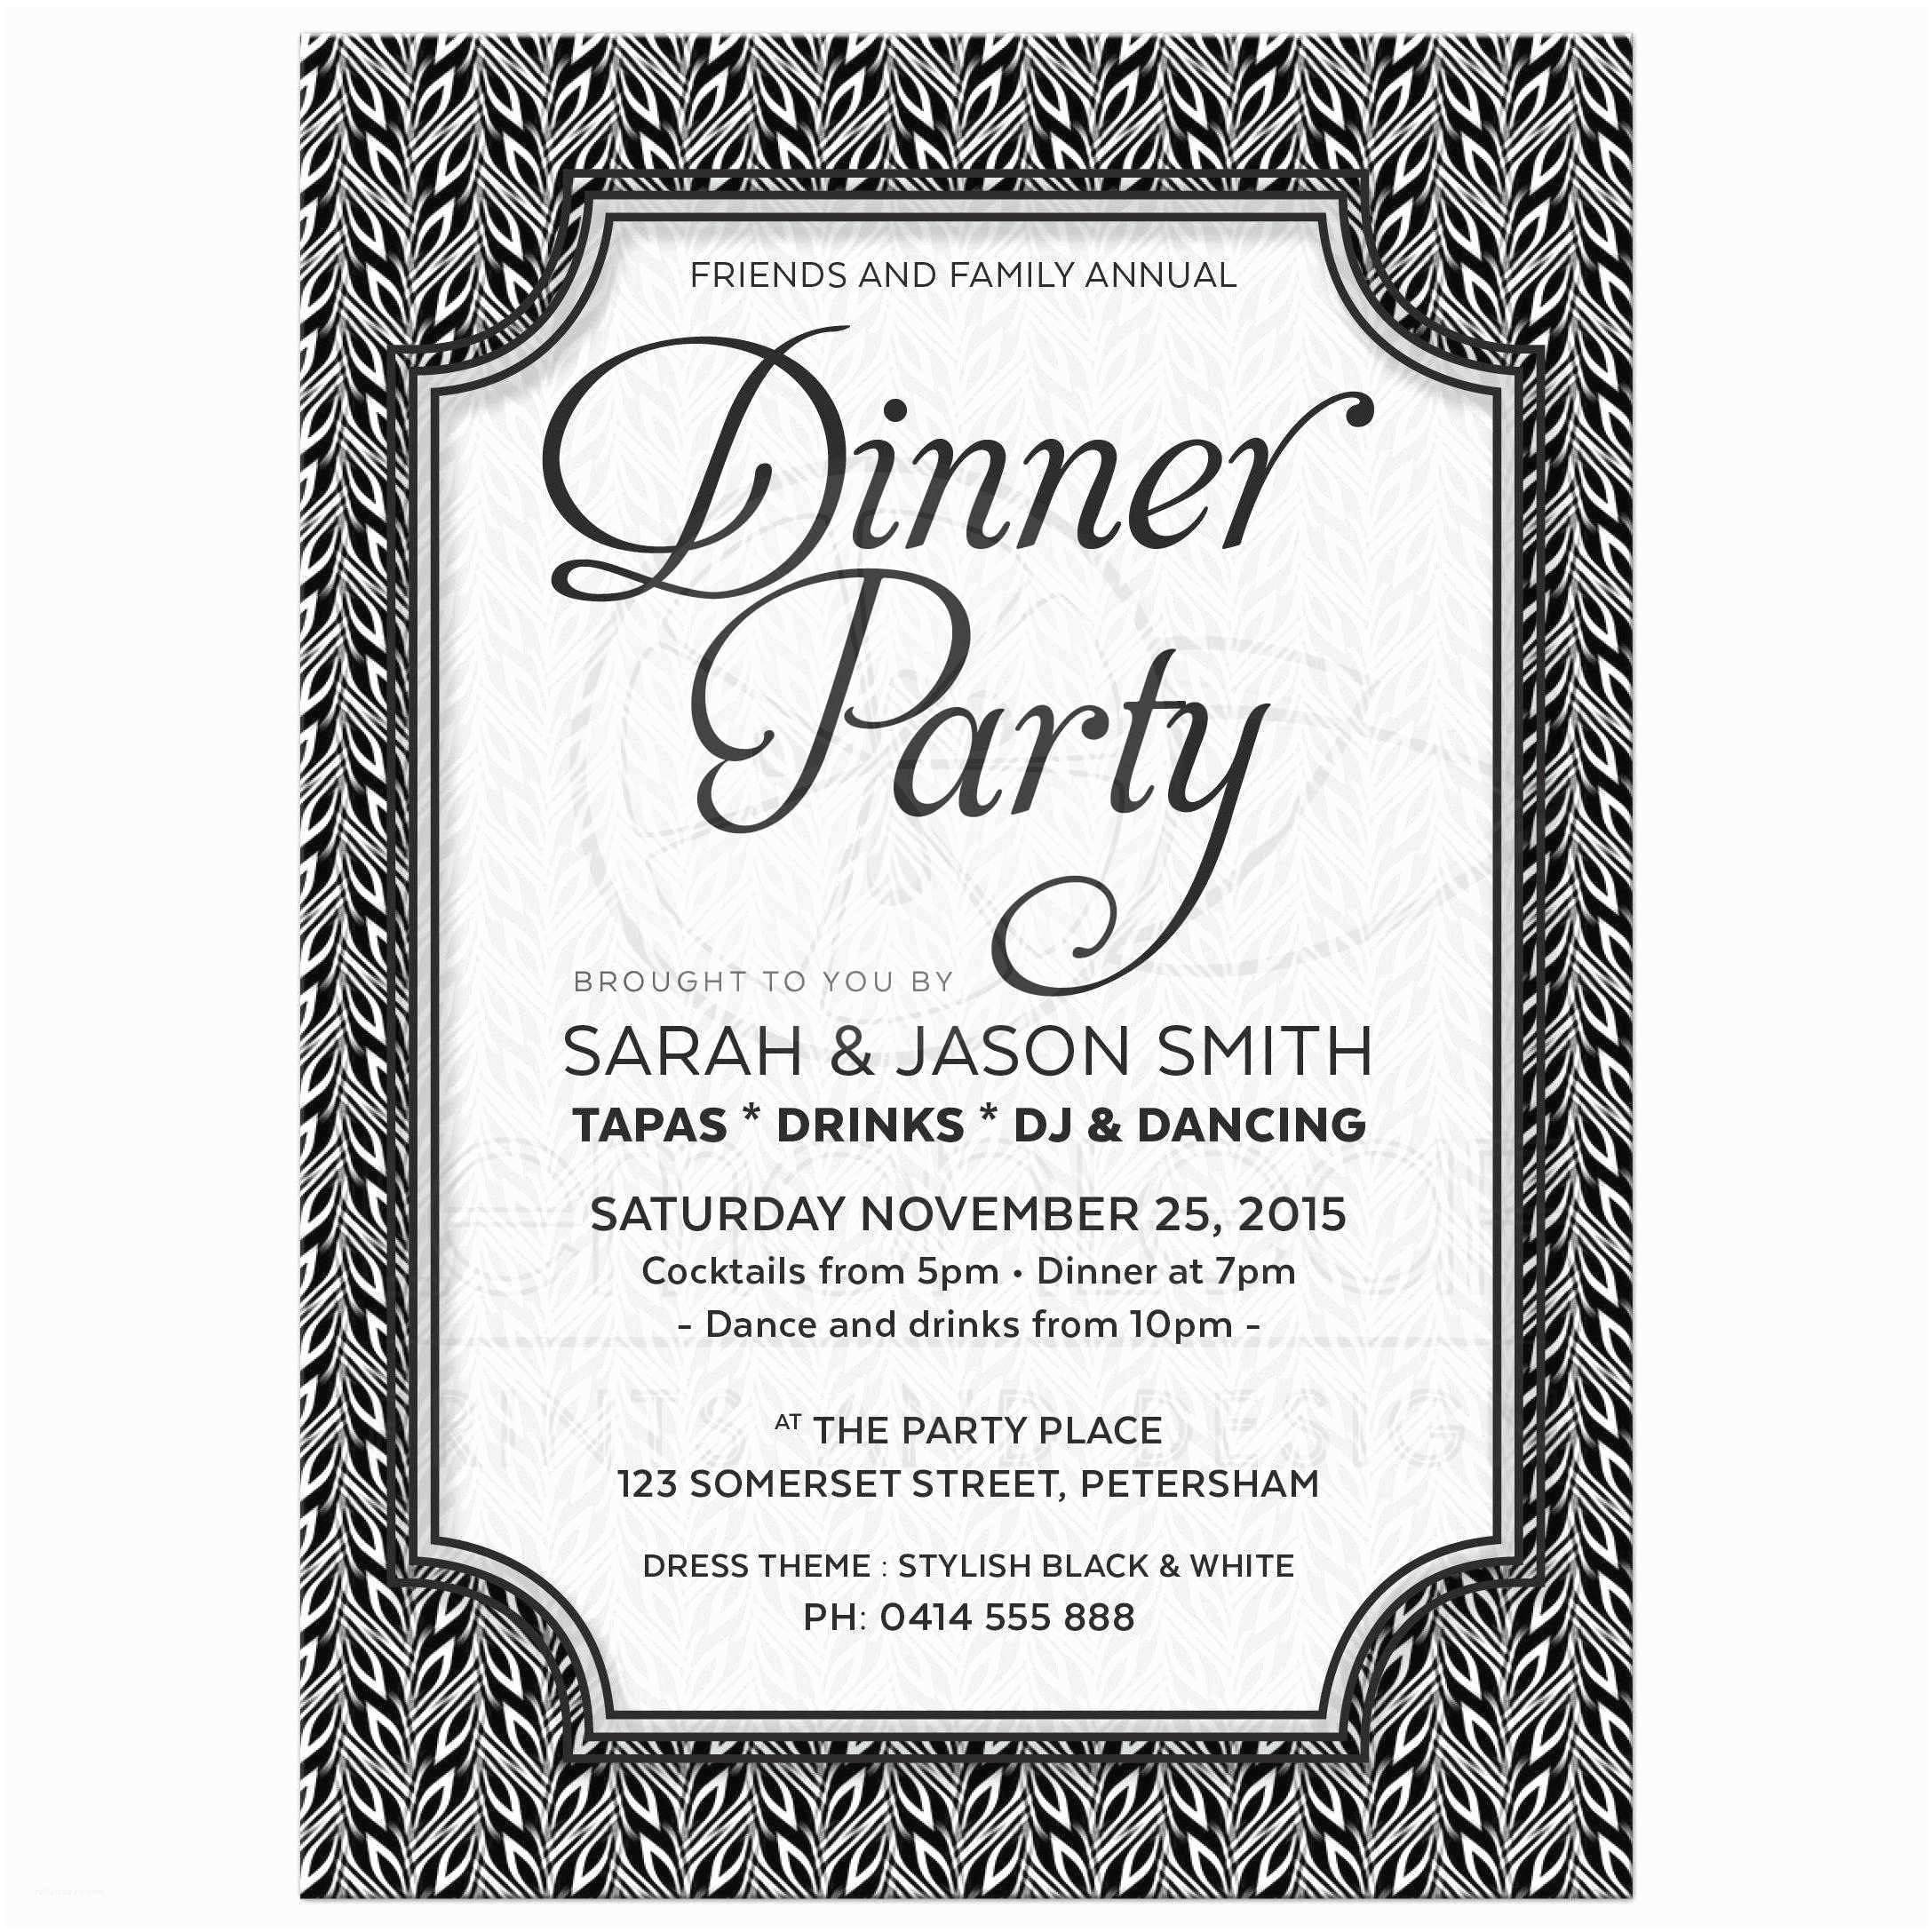 Wedding Party Invitations Anniversary Dinner Party Invitations